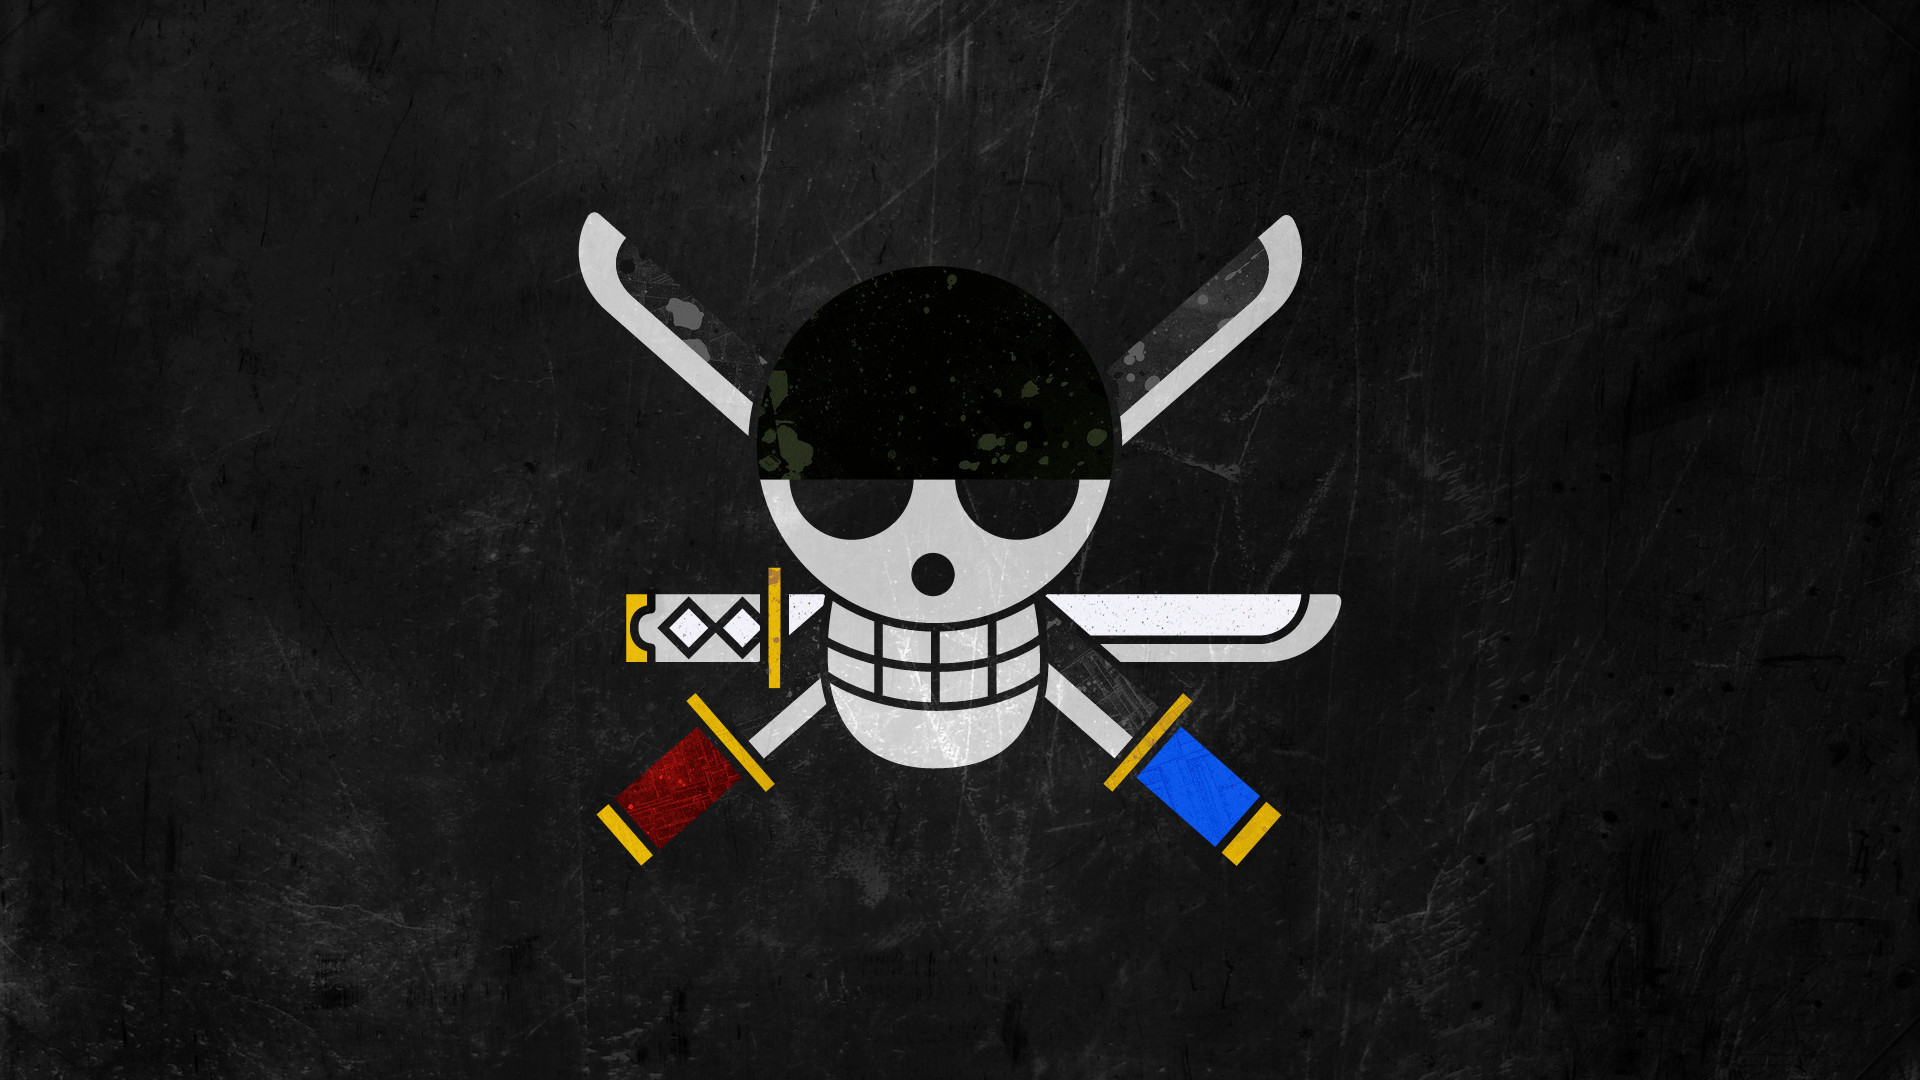 1920x1080 ... Pirate Flag ~ Zoro - Beginning of a Voyage by DrBoxHead